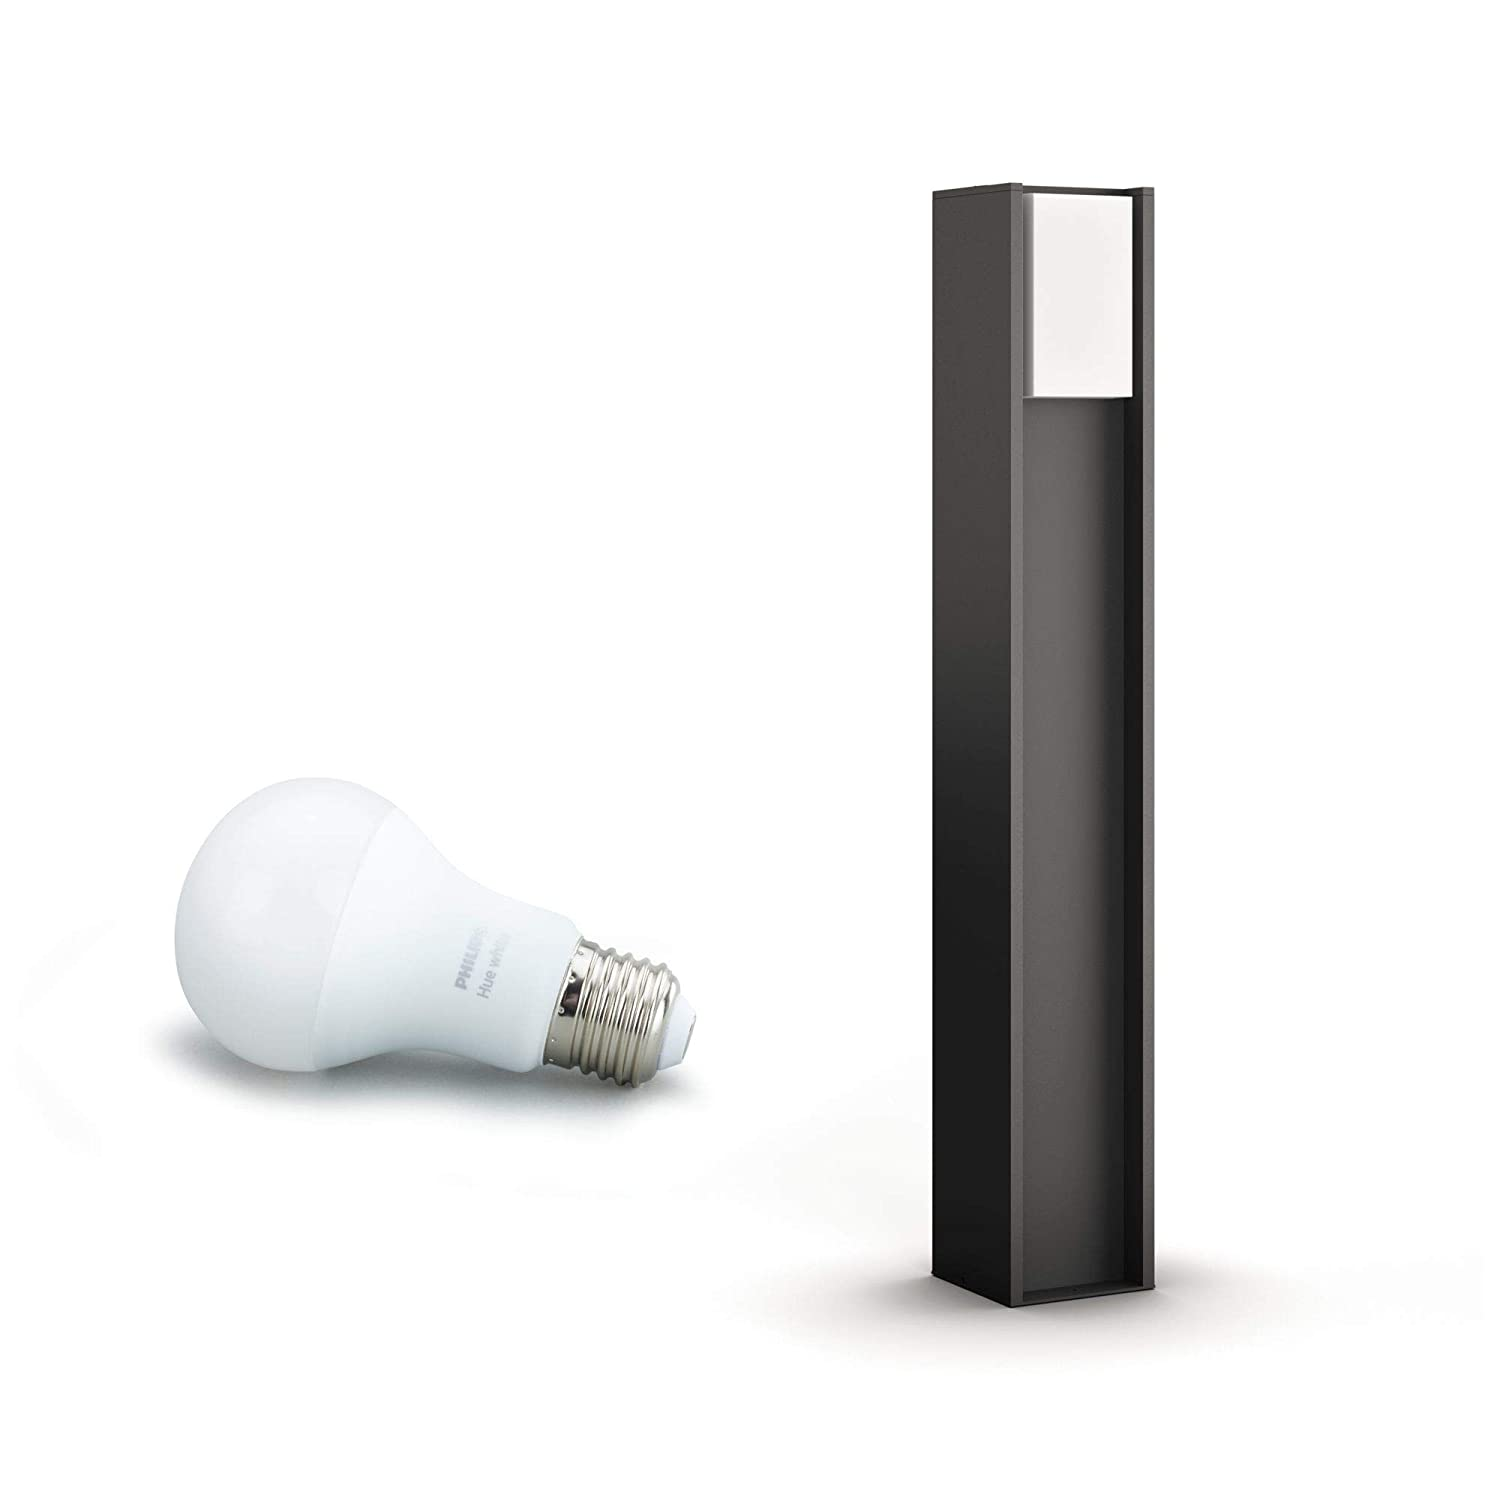 Philips Hue Turaco - Poste LED para exterior, color negro antracita, Iluminación inteligente, compatible con Amazon Alexa, Apple HomeKit y Google ...